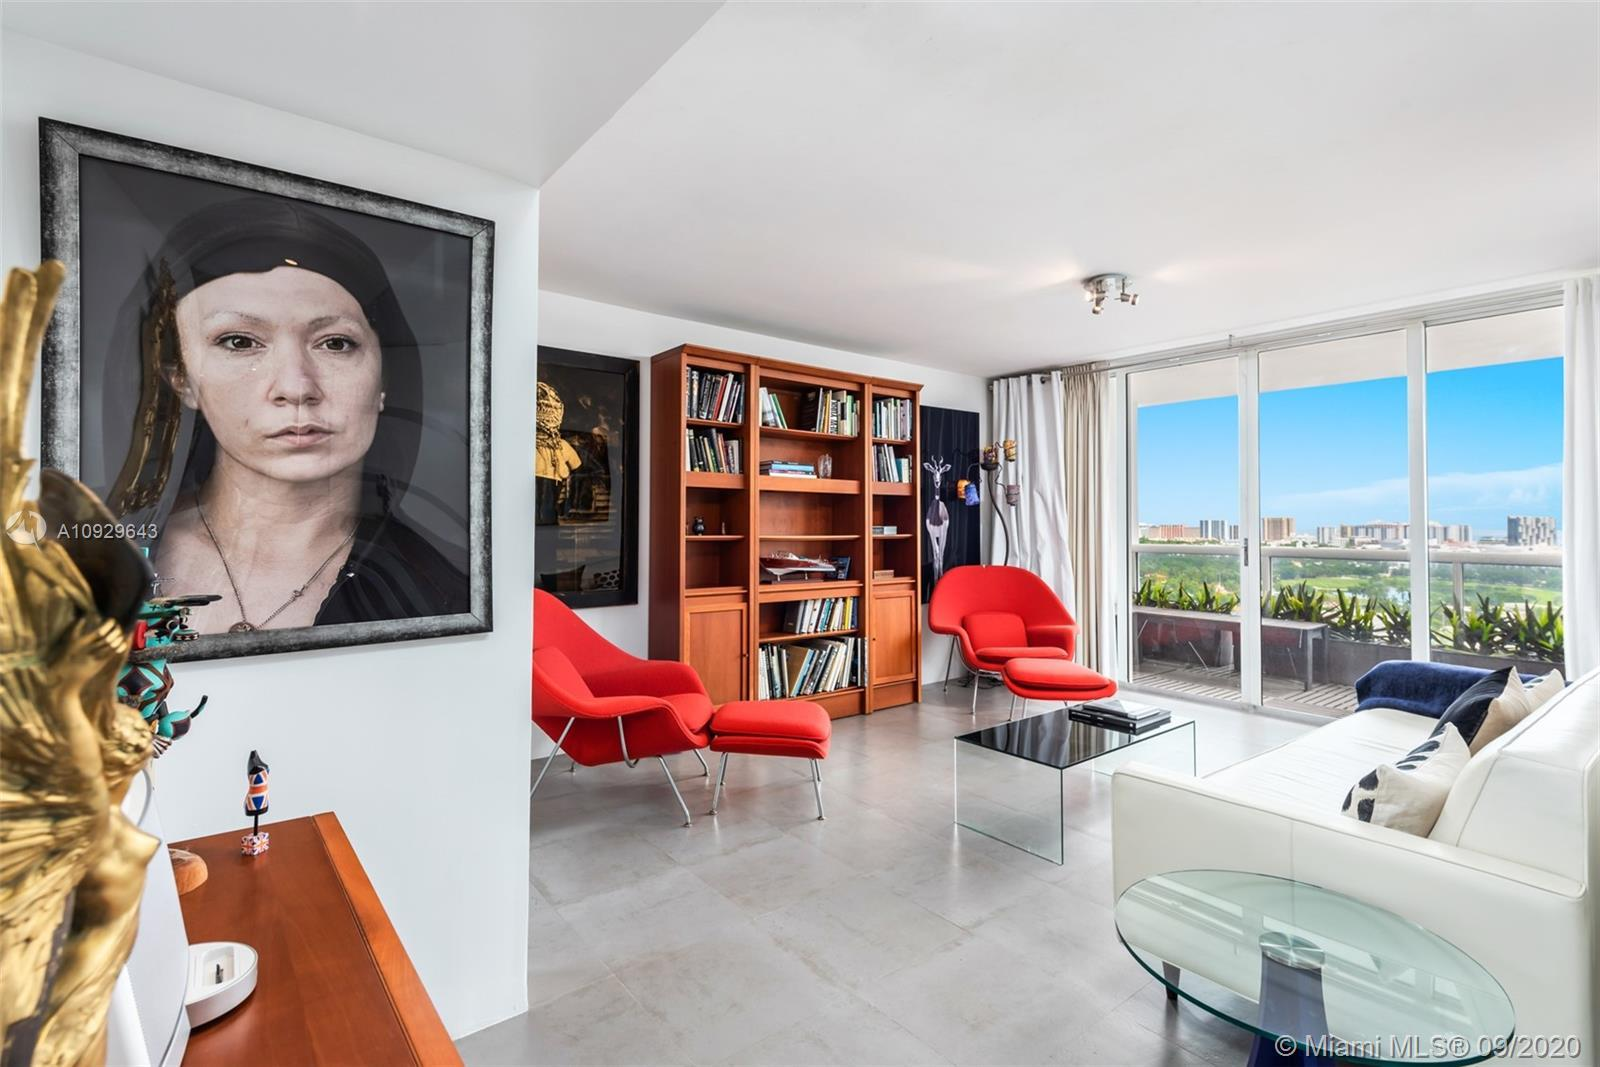 Fully renovated, this 2-bed, 2-baths loft-style 1,270 SF home in Sunset Harbour features floor-to-ce